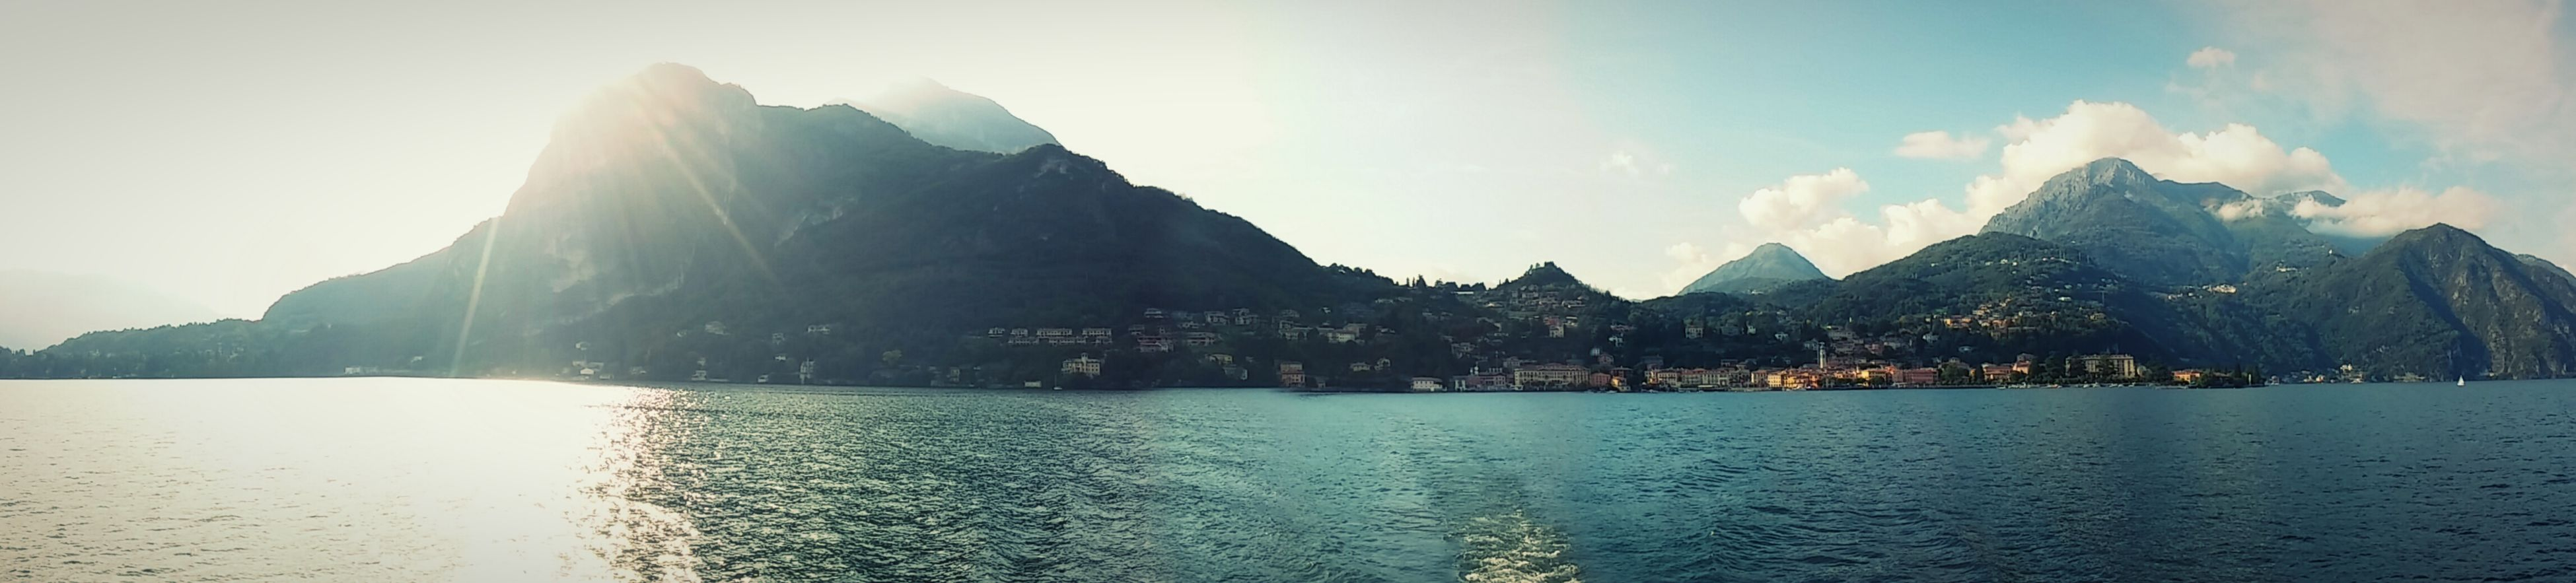 Erasmus Photo Diary day 42: Menaggio Lago Di Como 2